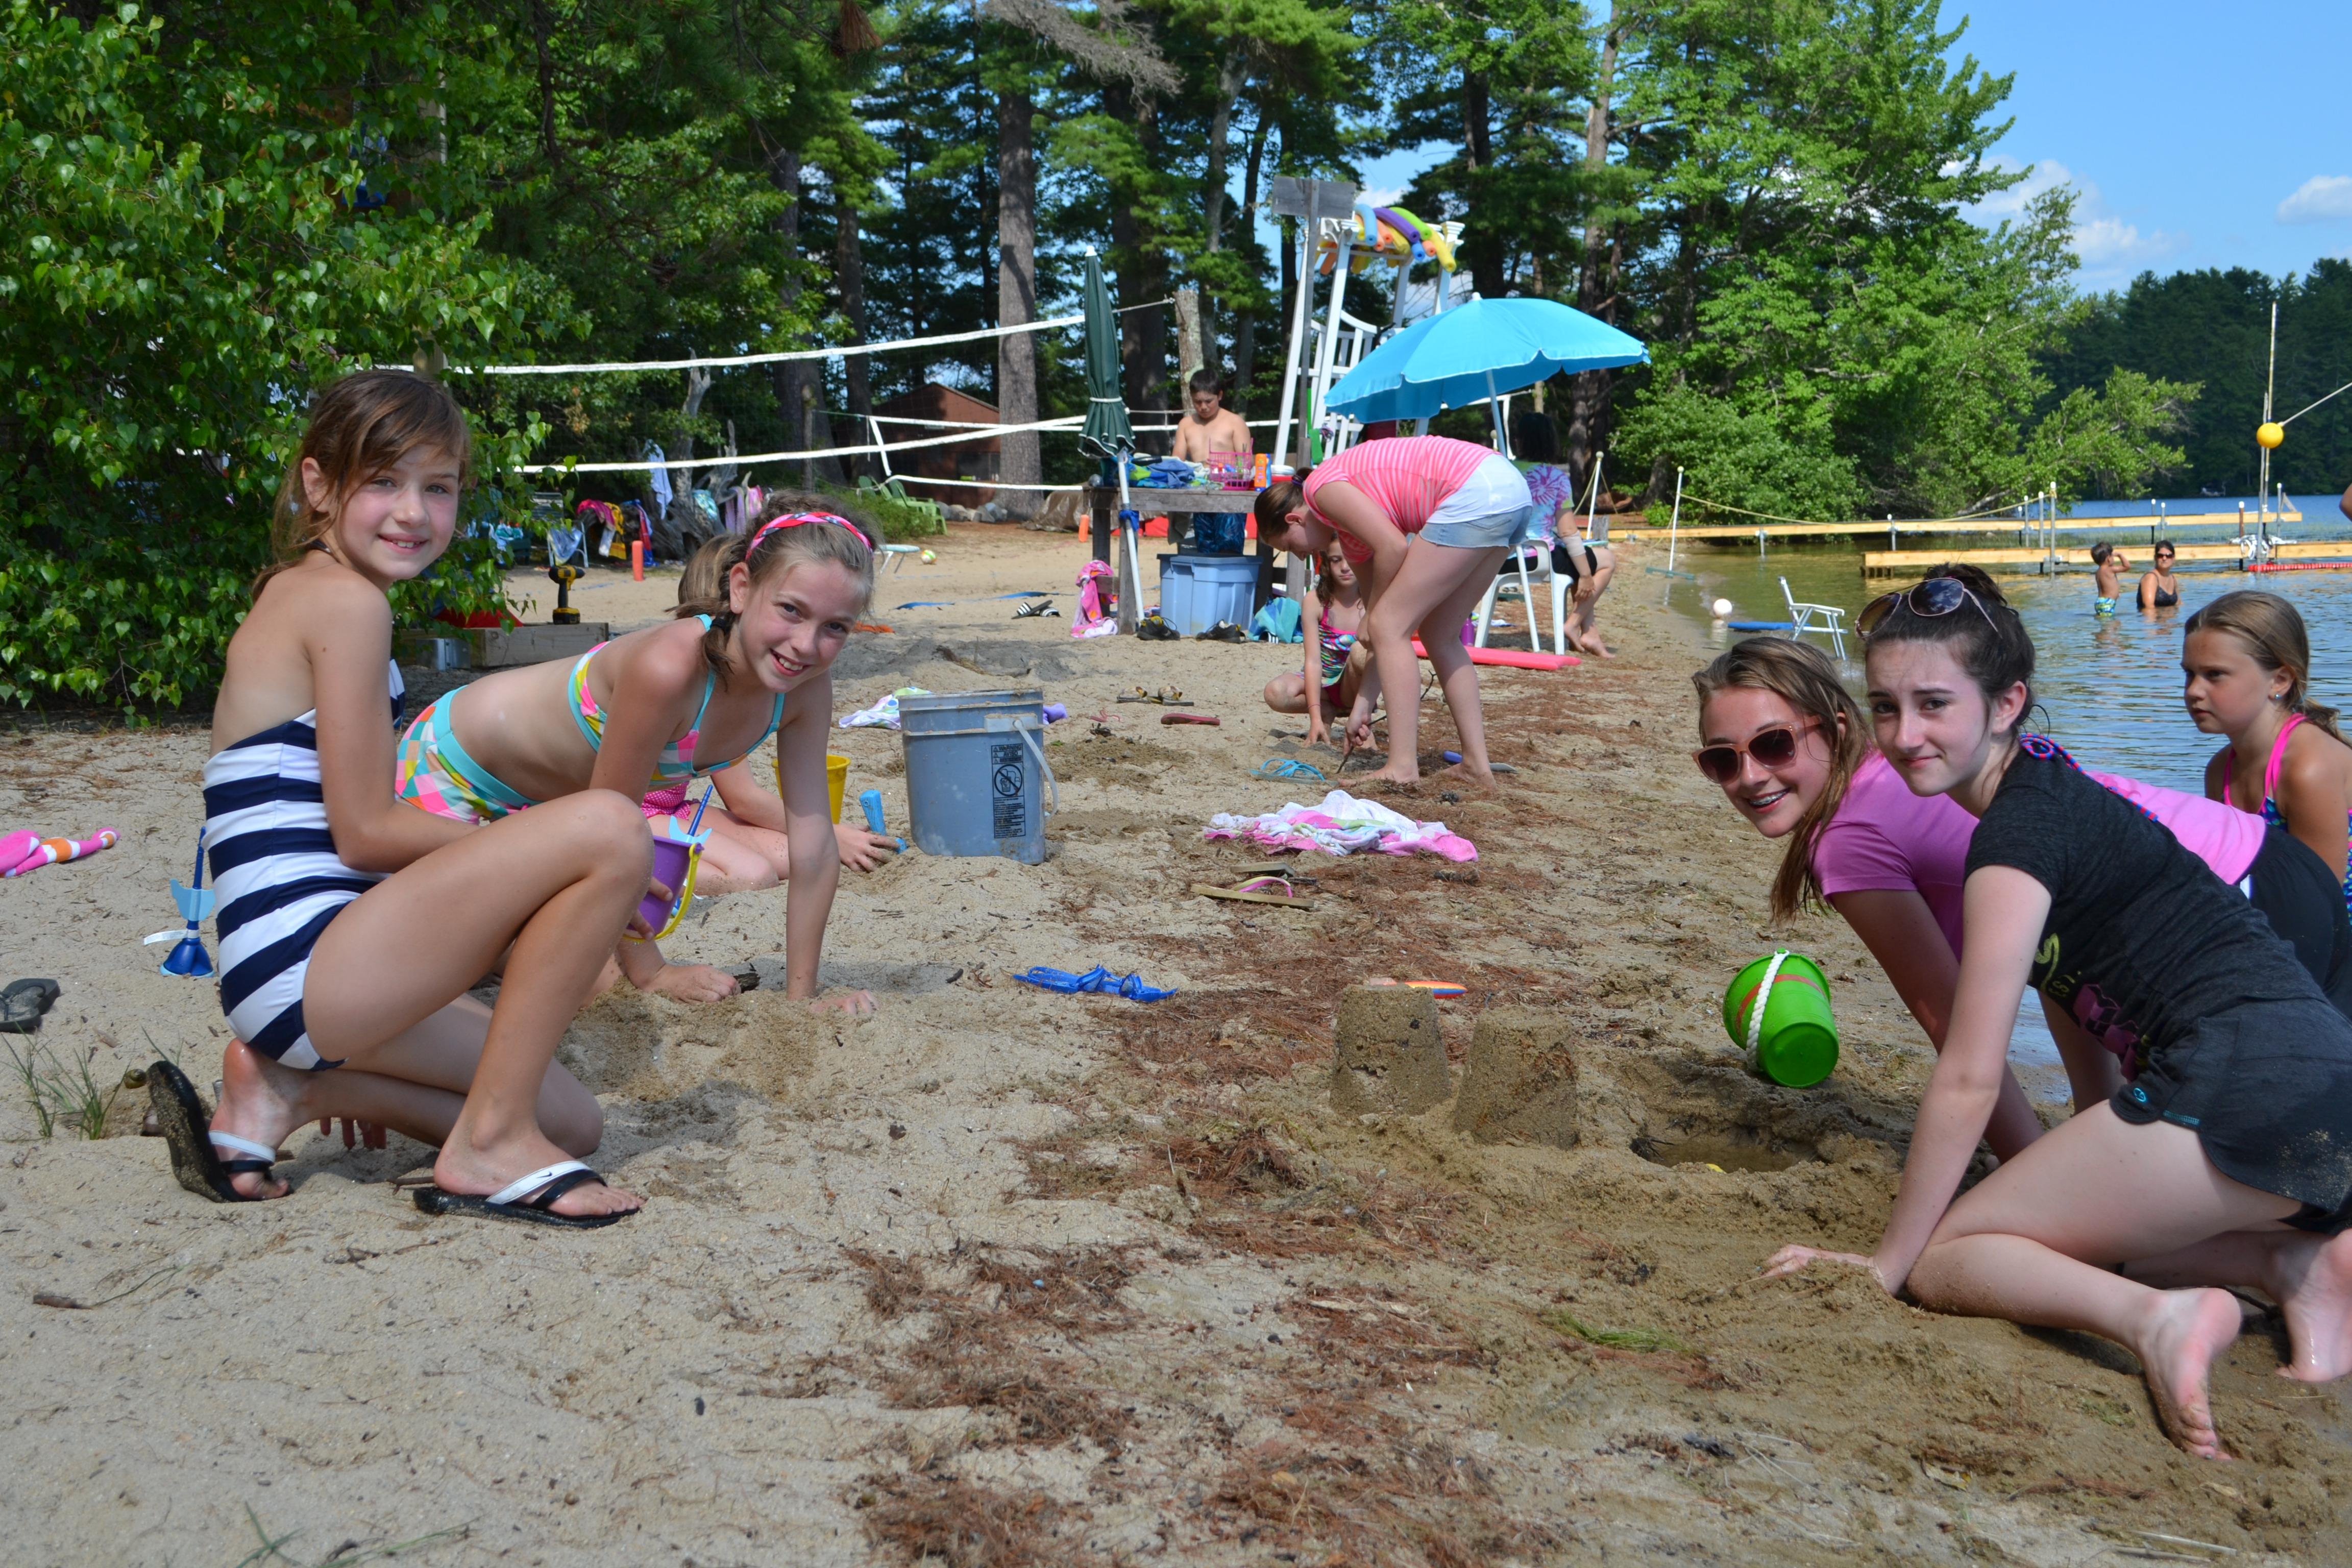 Campers building sandcastles on the beach at the waterfront